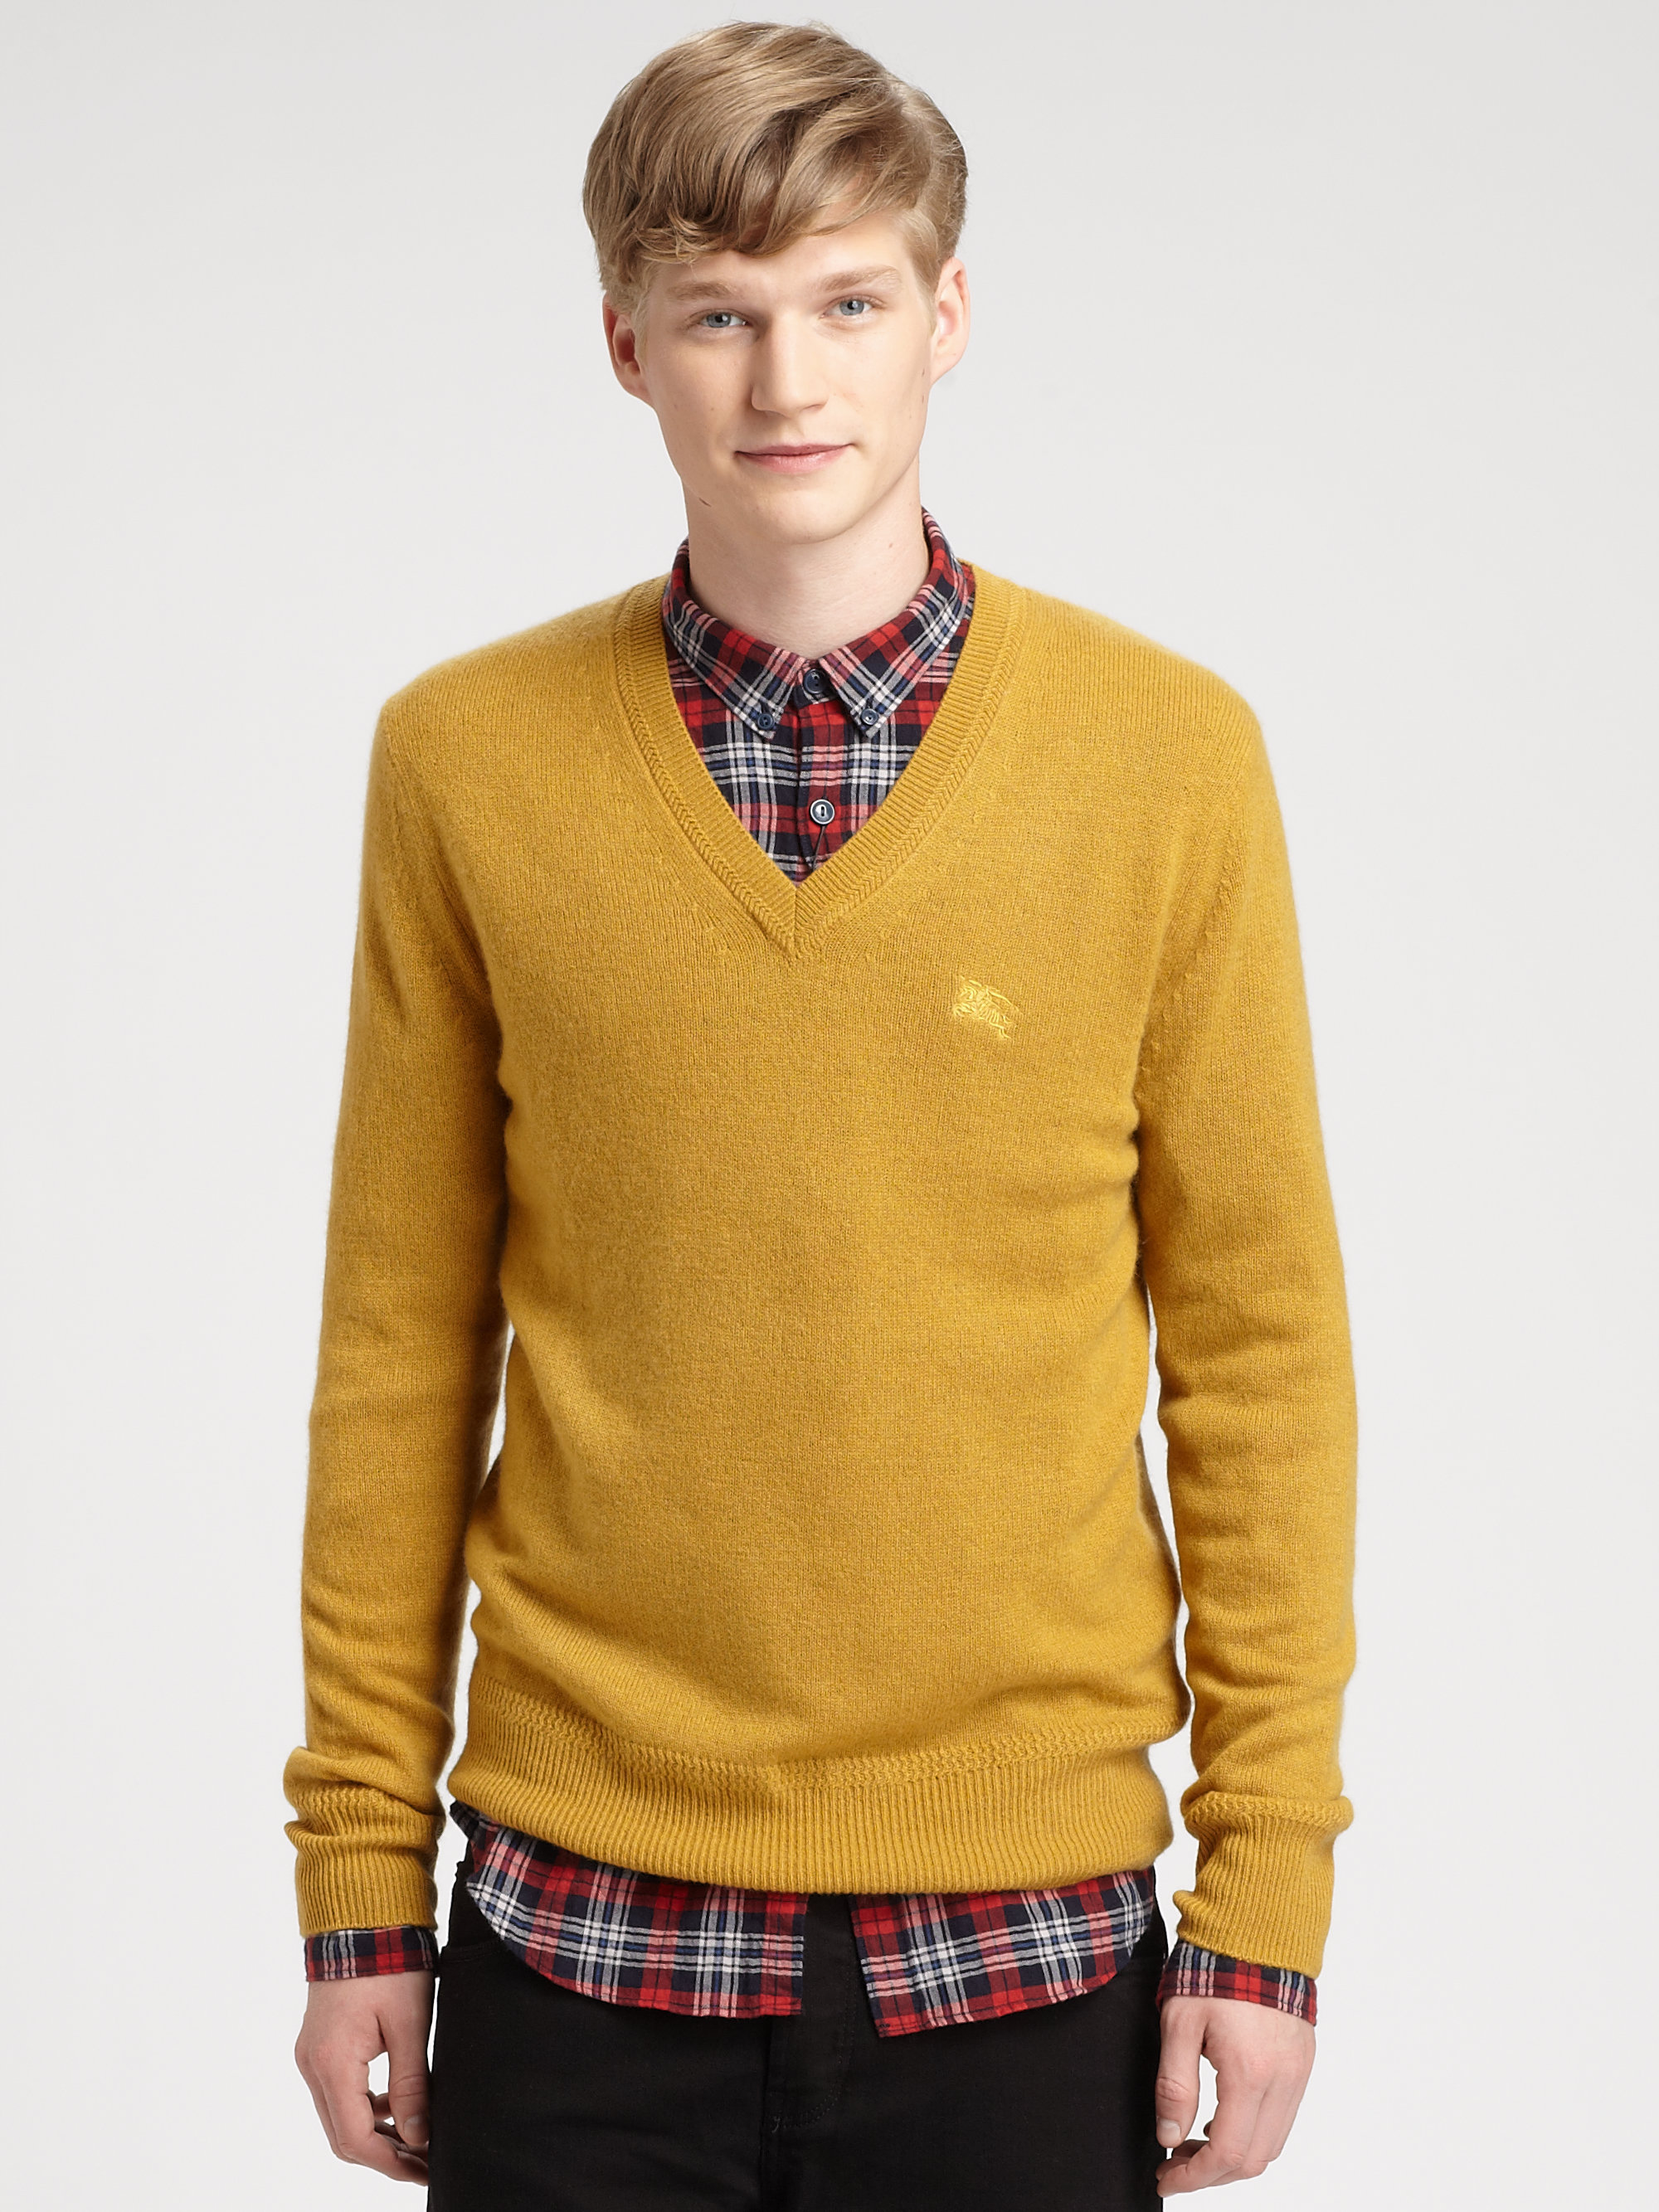 Lyst Burberry Brit Cashmere Sweater In Yellow For Men